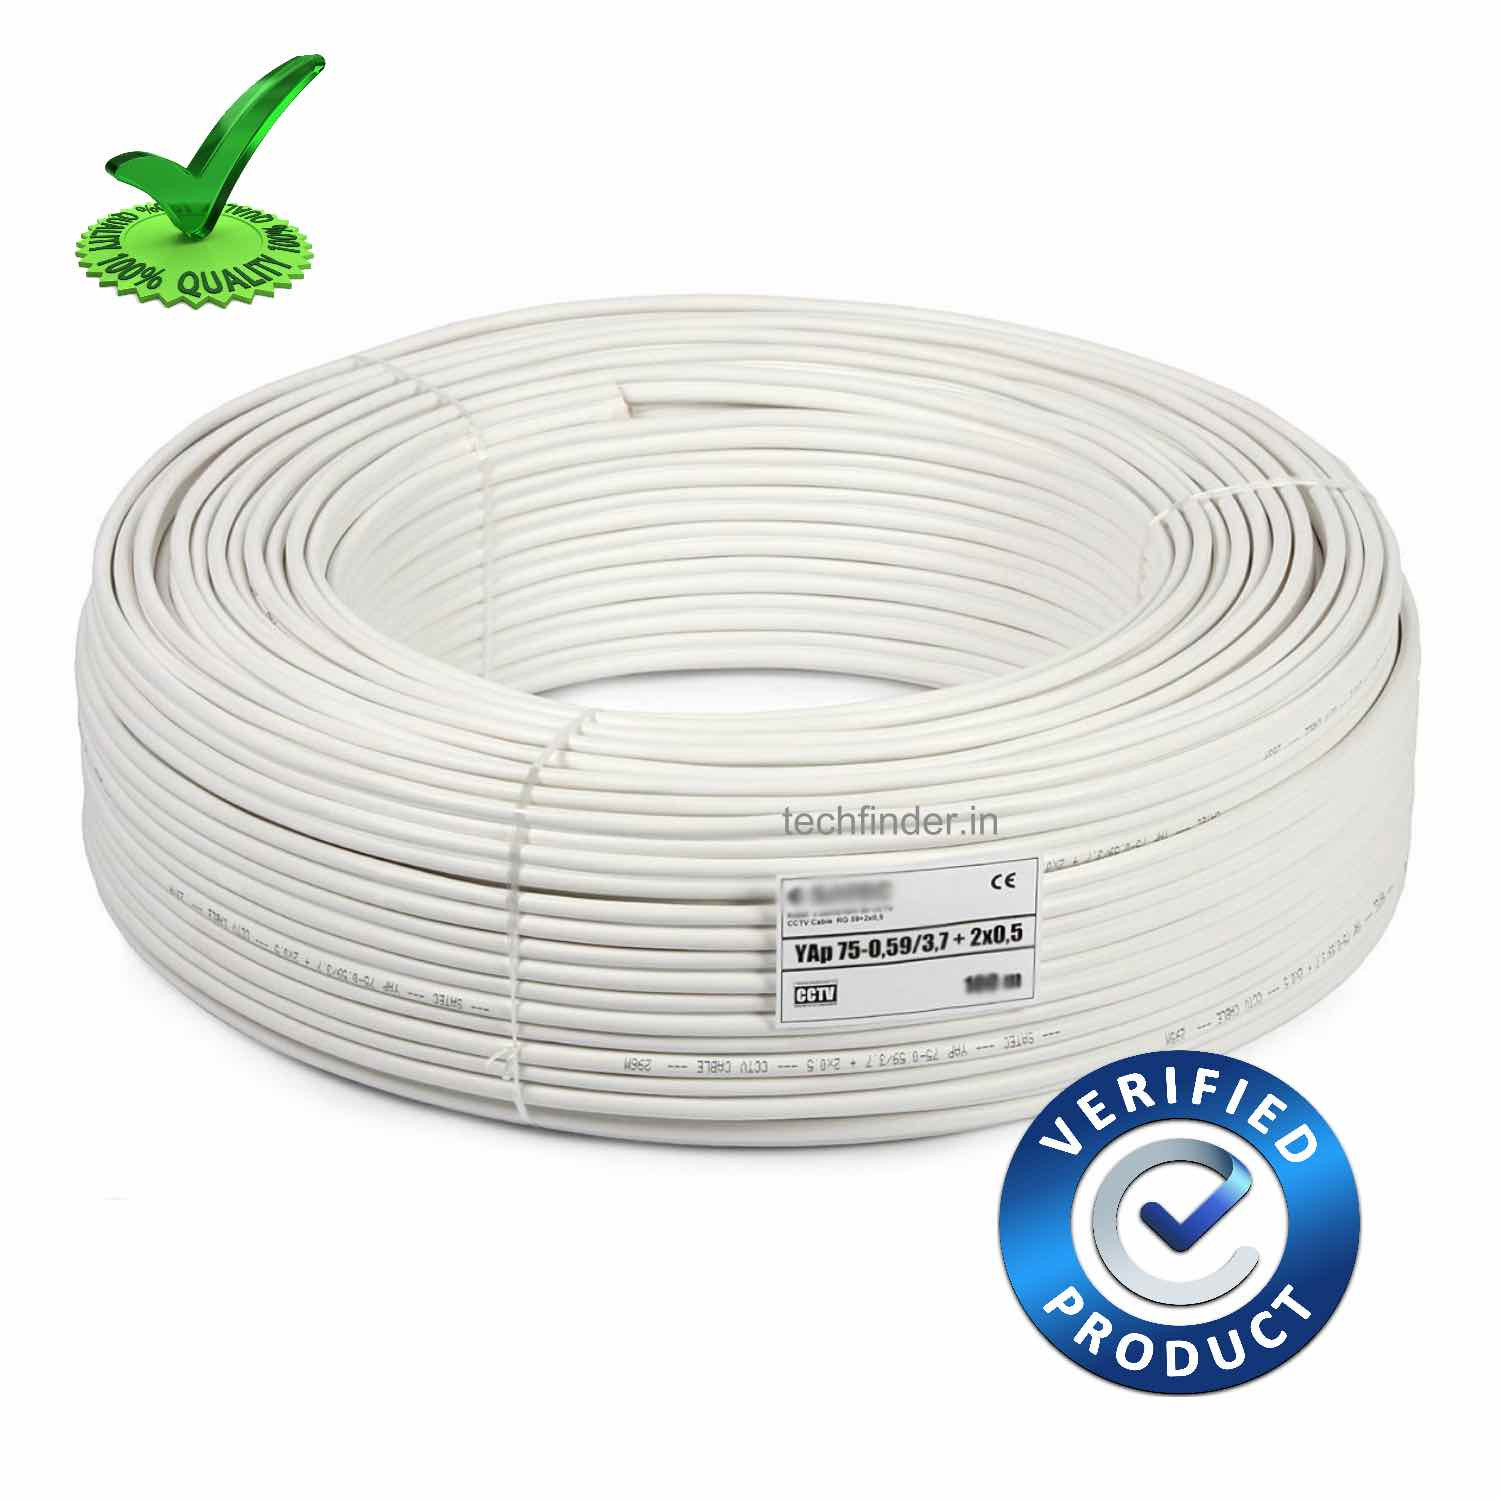 2+1 Co-Oxial Economy CCTV Cable 100mtr Coil